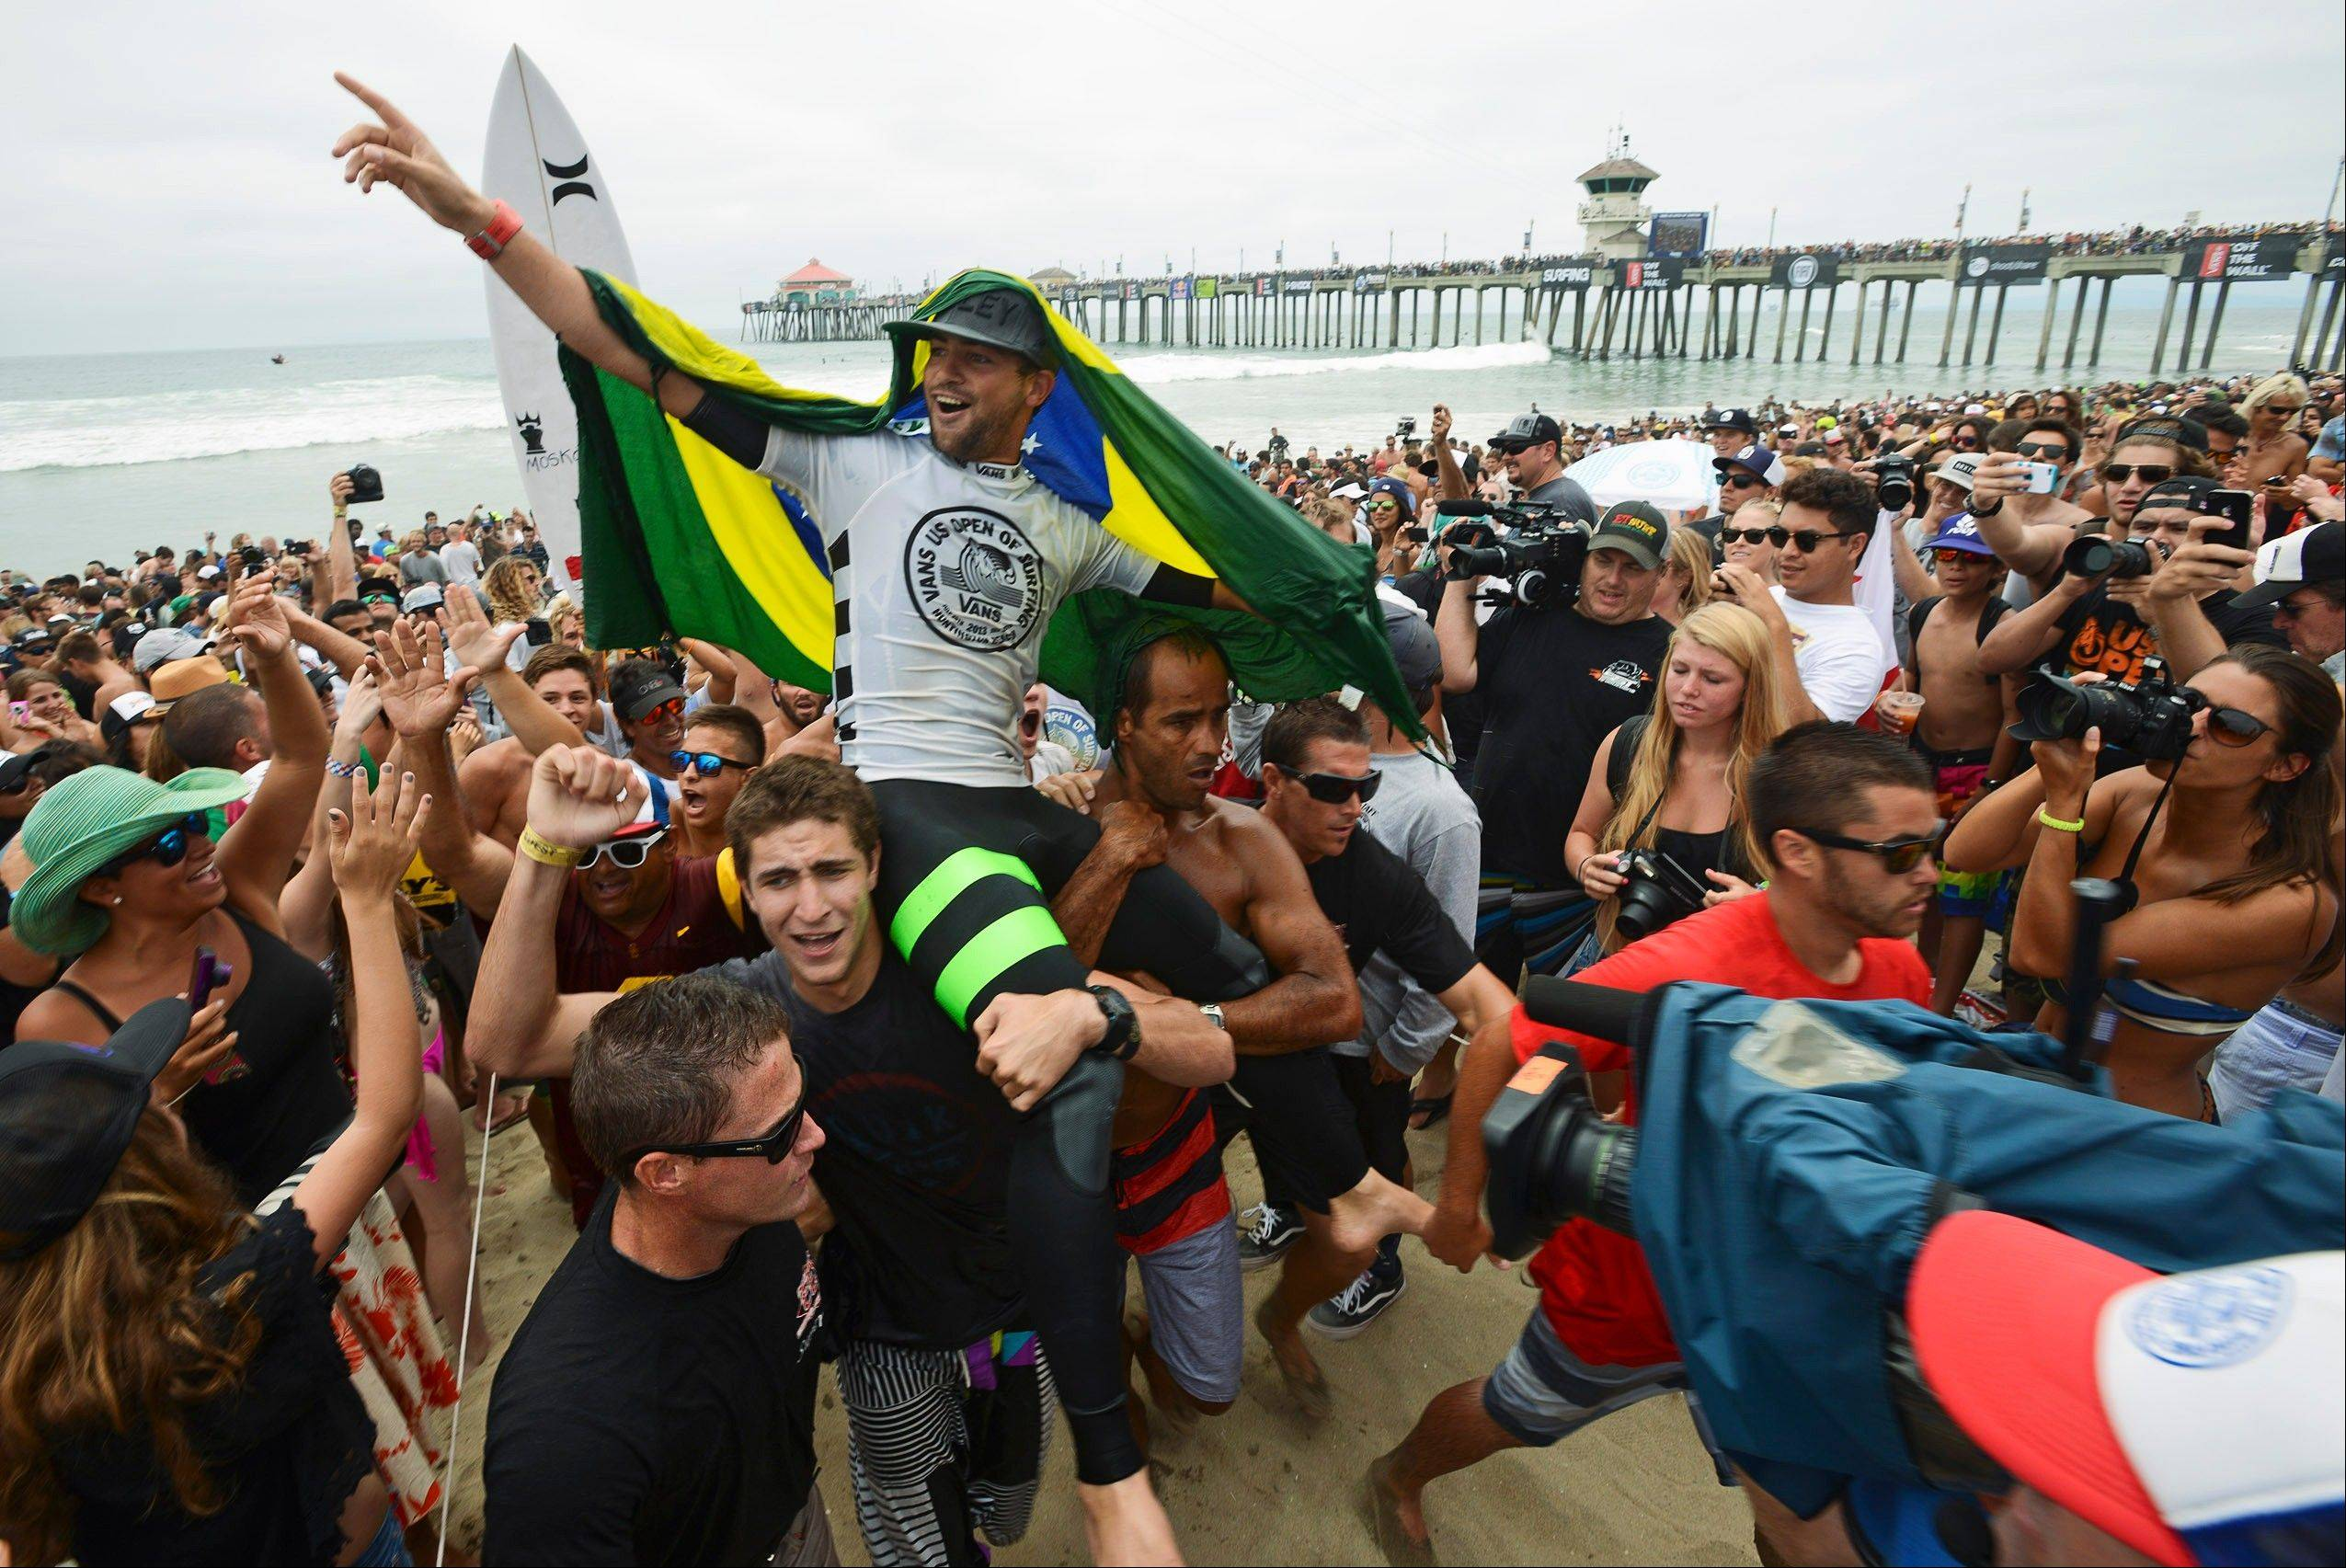 Associated PressAlejo Muniz, of Brazil, was crowned the men's champion of the 2013 Vans US Open of Surfing competition after defeating local surfer Kolohe Andino in the men's final on Sunday, July 28, 2013, in Huntington Beach, Calif. Police say eight people have been arrested after a rowdy crowd surged through downtown after the event, fighting and damaging property.